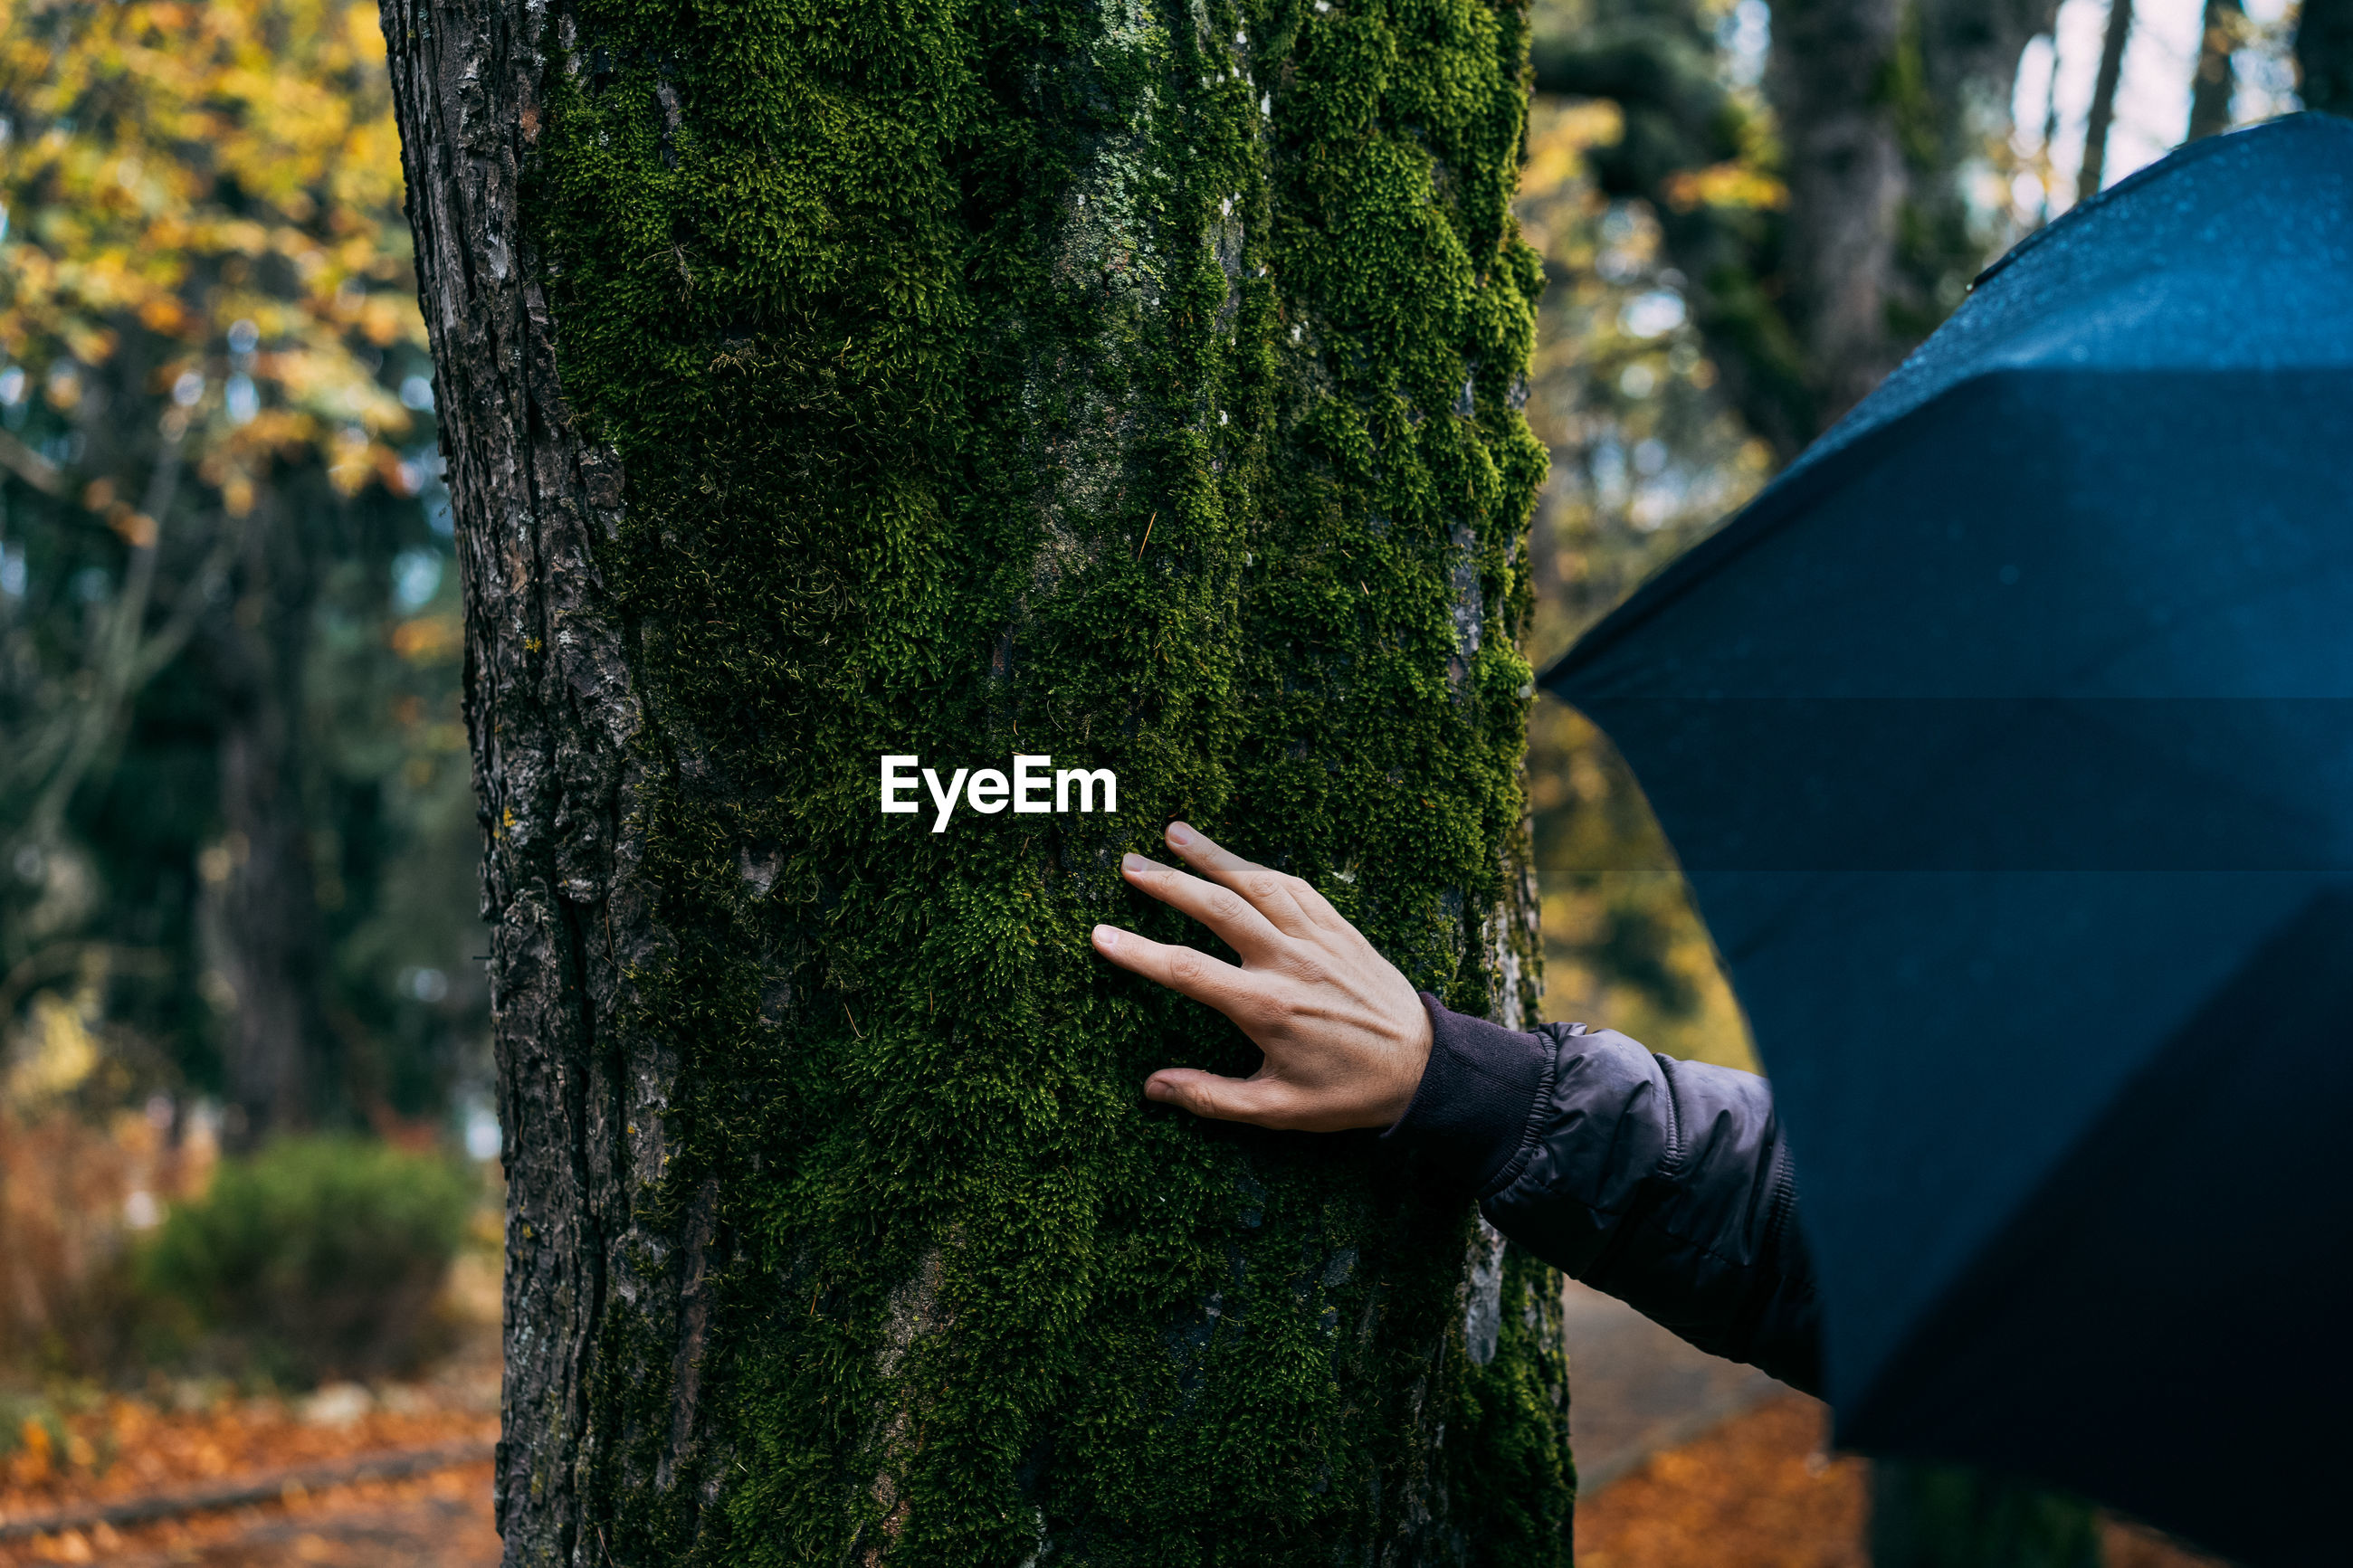 Cropped hand of person with umbrella against tree